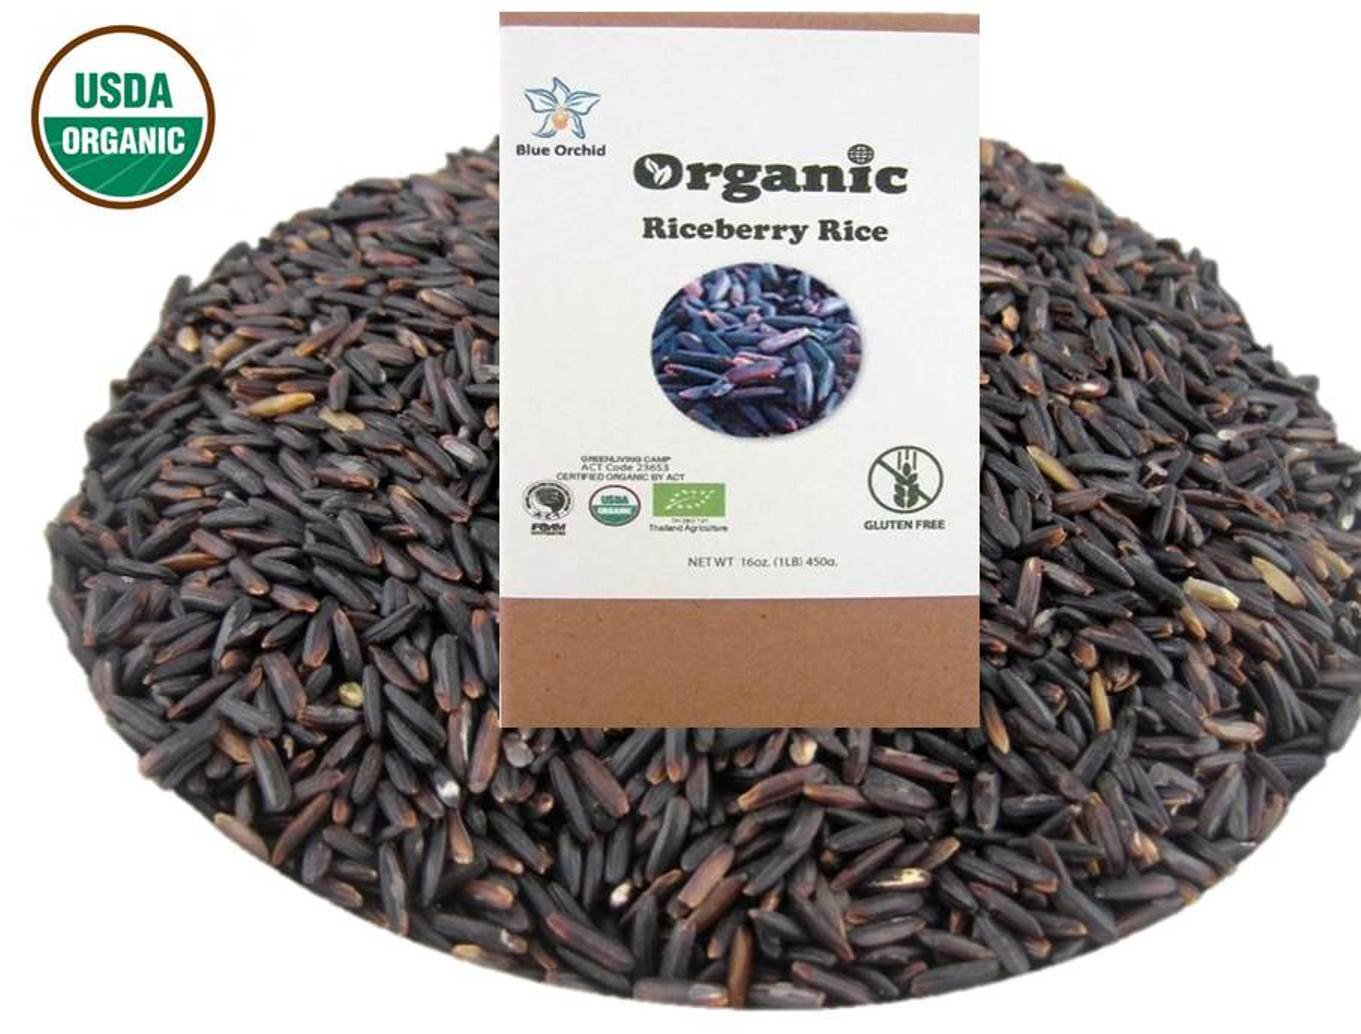 USDA Certified Organic Riceberry Rice from Thailand Black Healthy Natural Purple Long Grain 3 LB (48 oz)